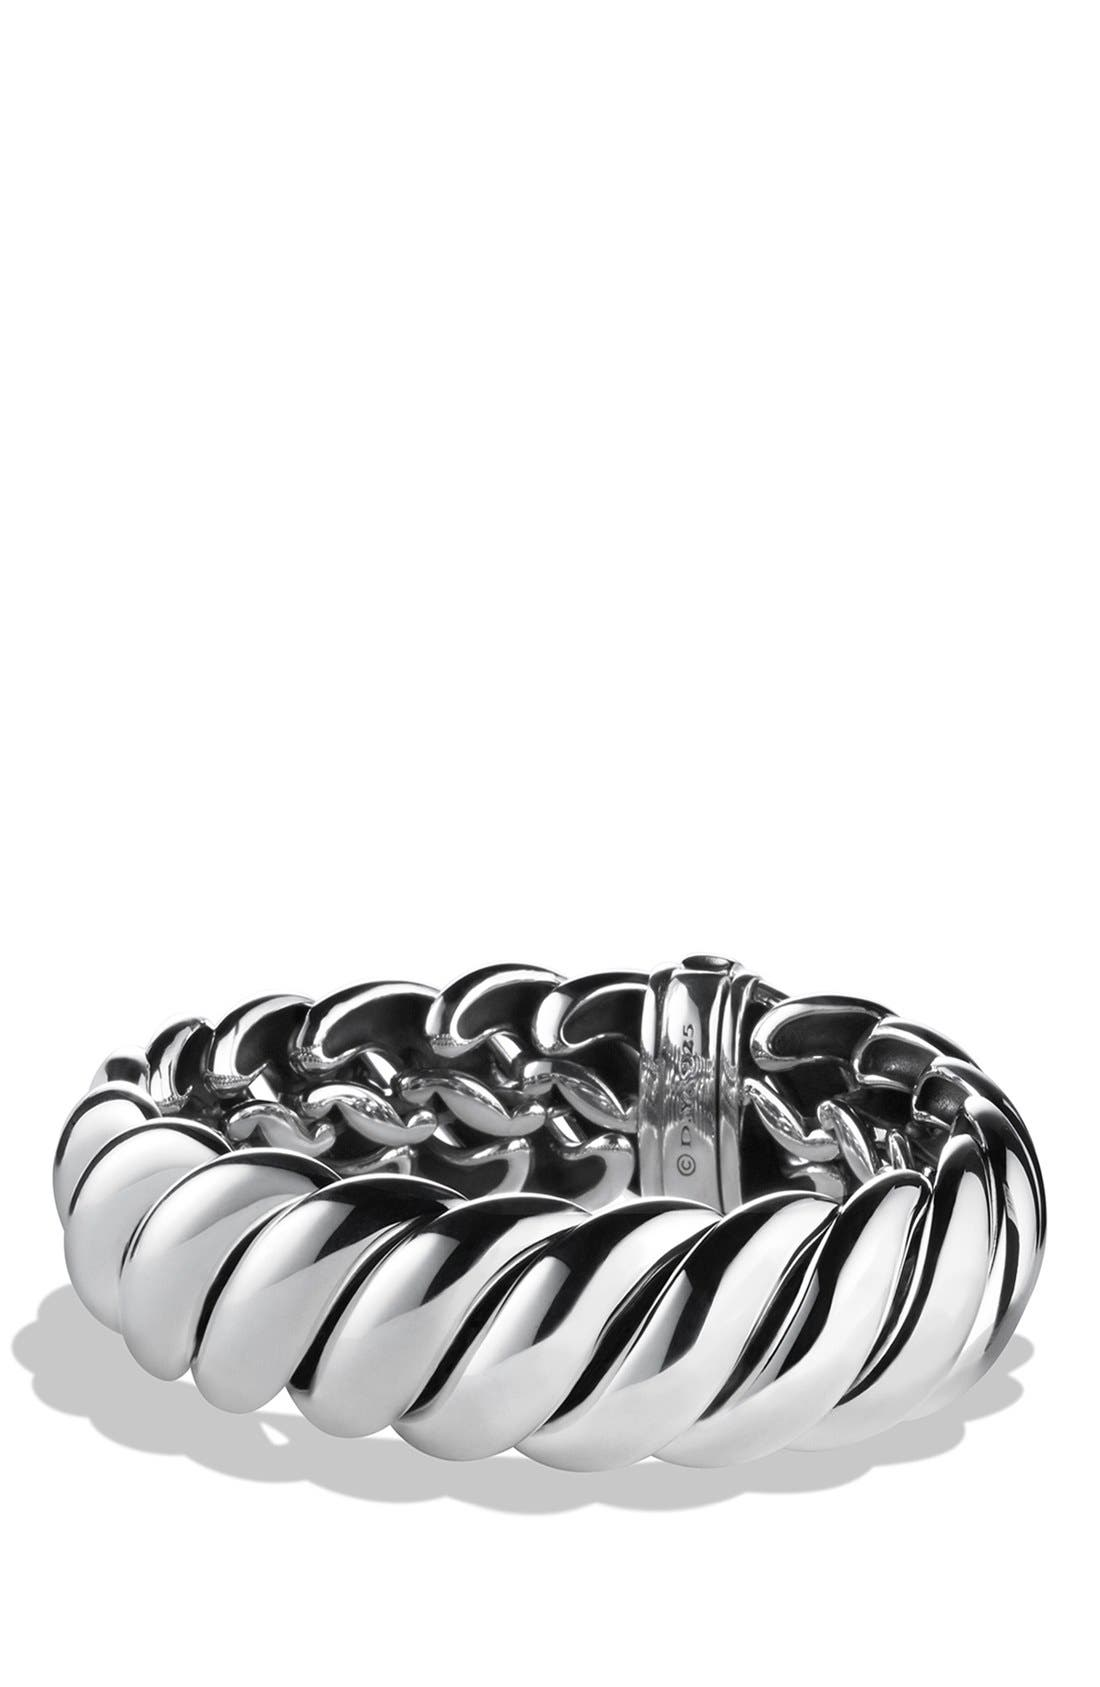 David Yurman 'Hampton Cable' Bracelet